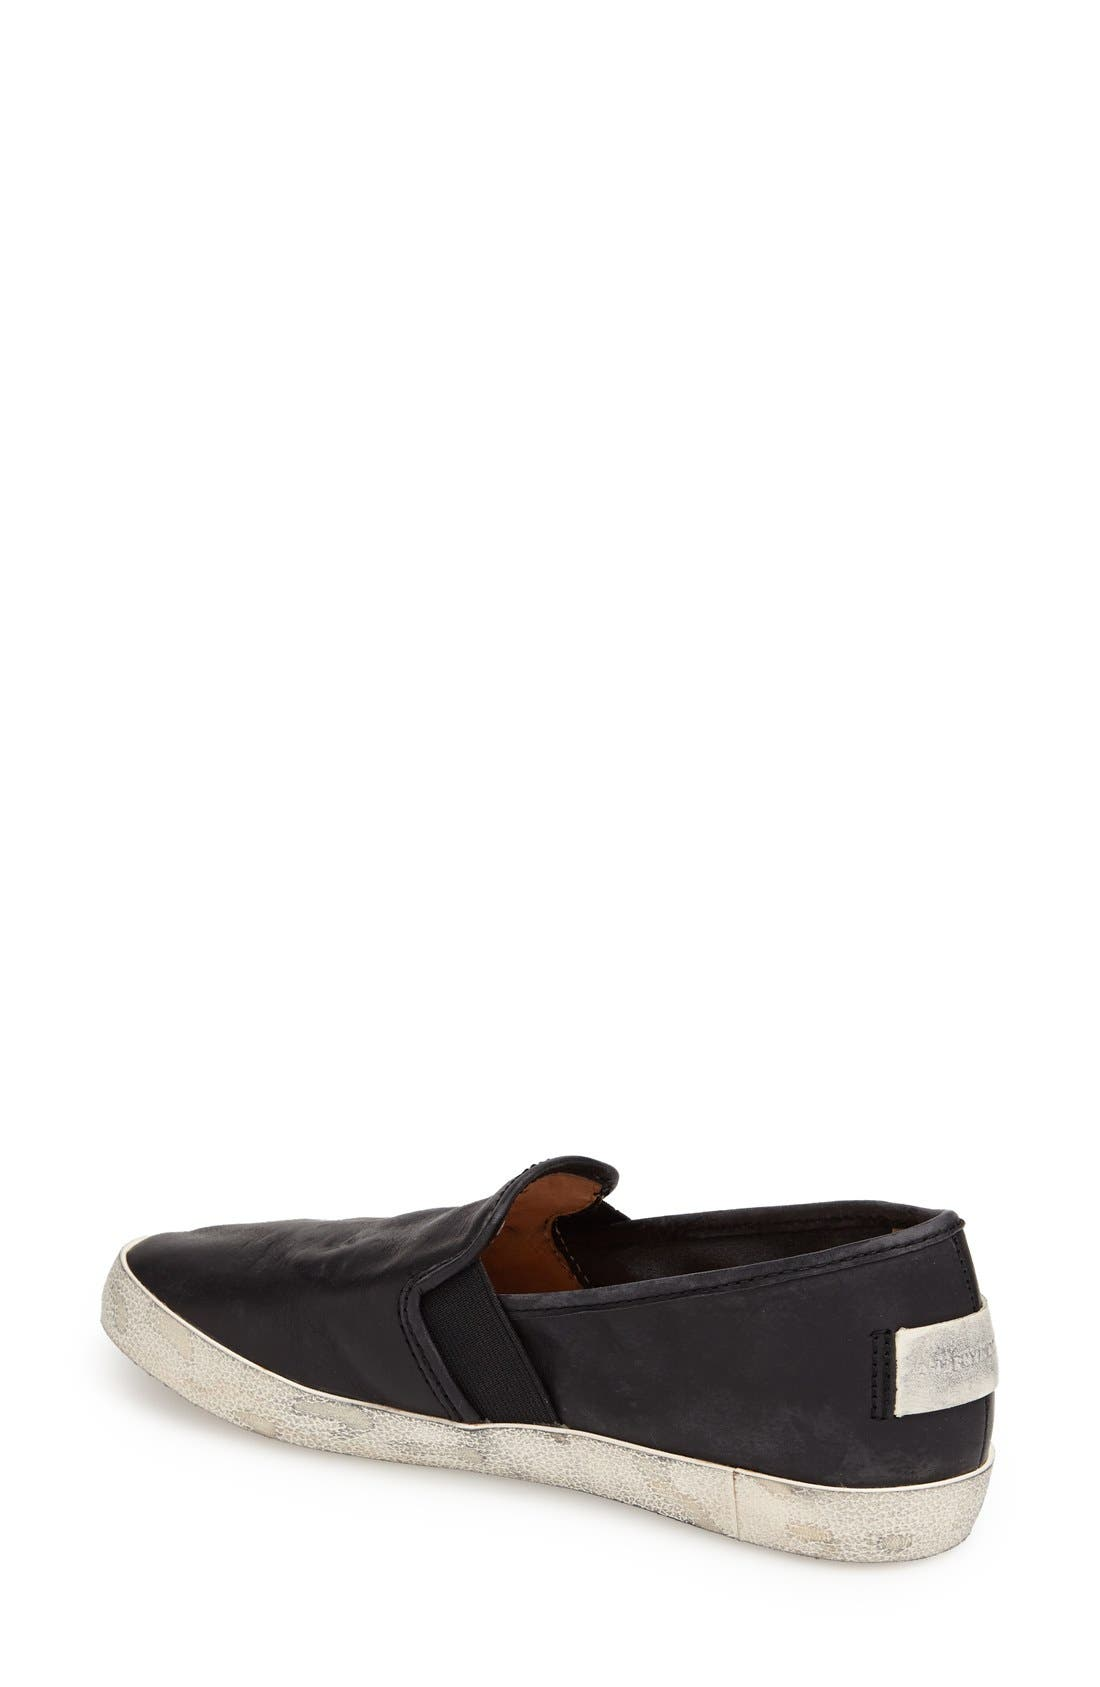 'Dylan' Leather Slip-On Sneaker,                             Alternate thumbnail 3, color,                             001